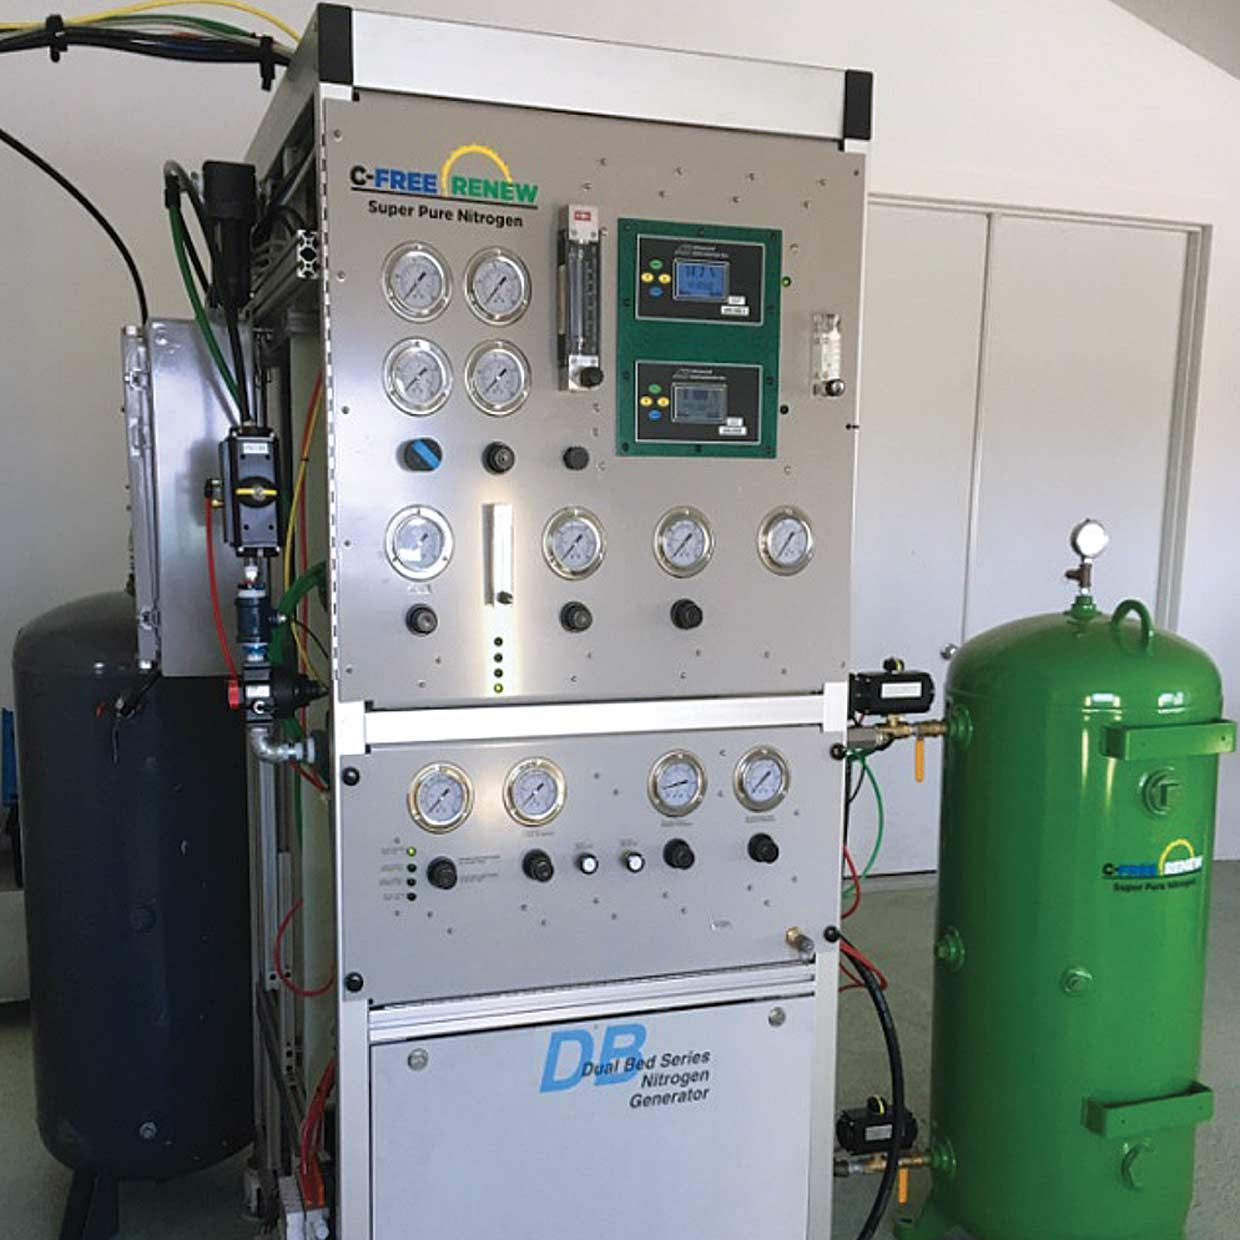 The nitrogen generator is key to reducing the amount of oxygen in the air mixture and making the nitrogen pure enough to be used for fuel.